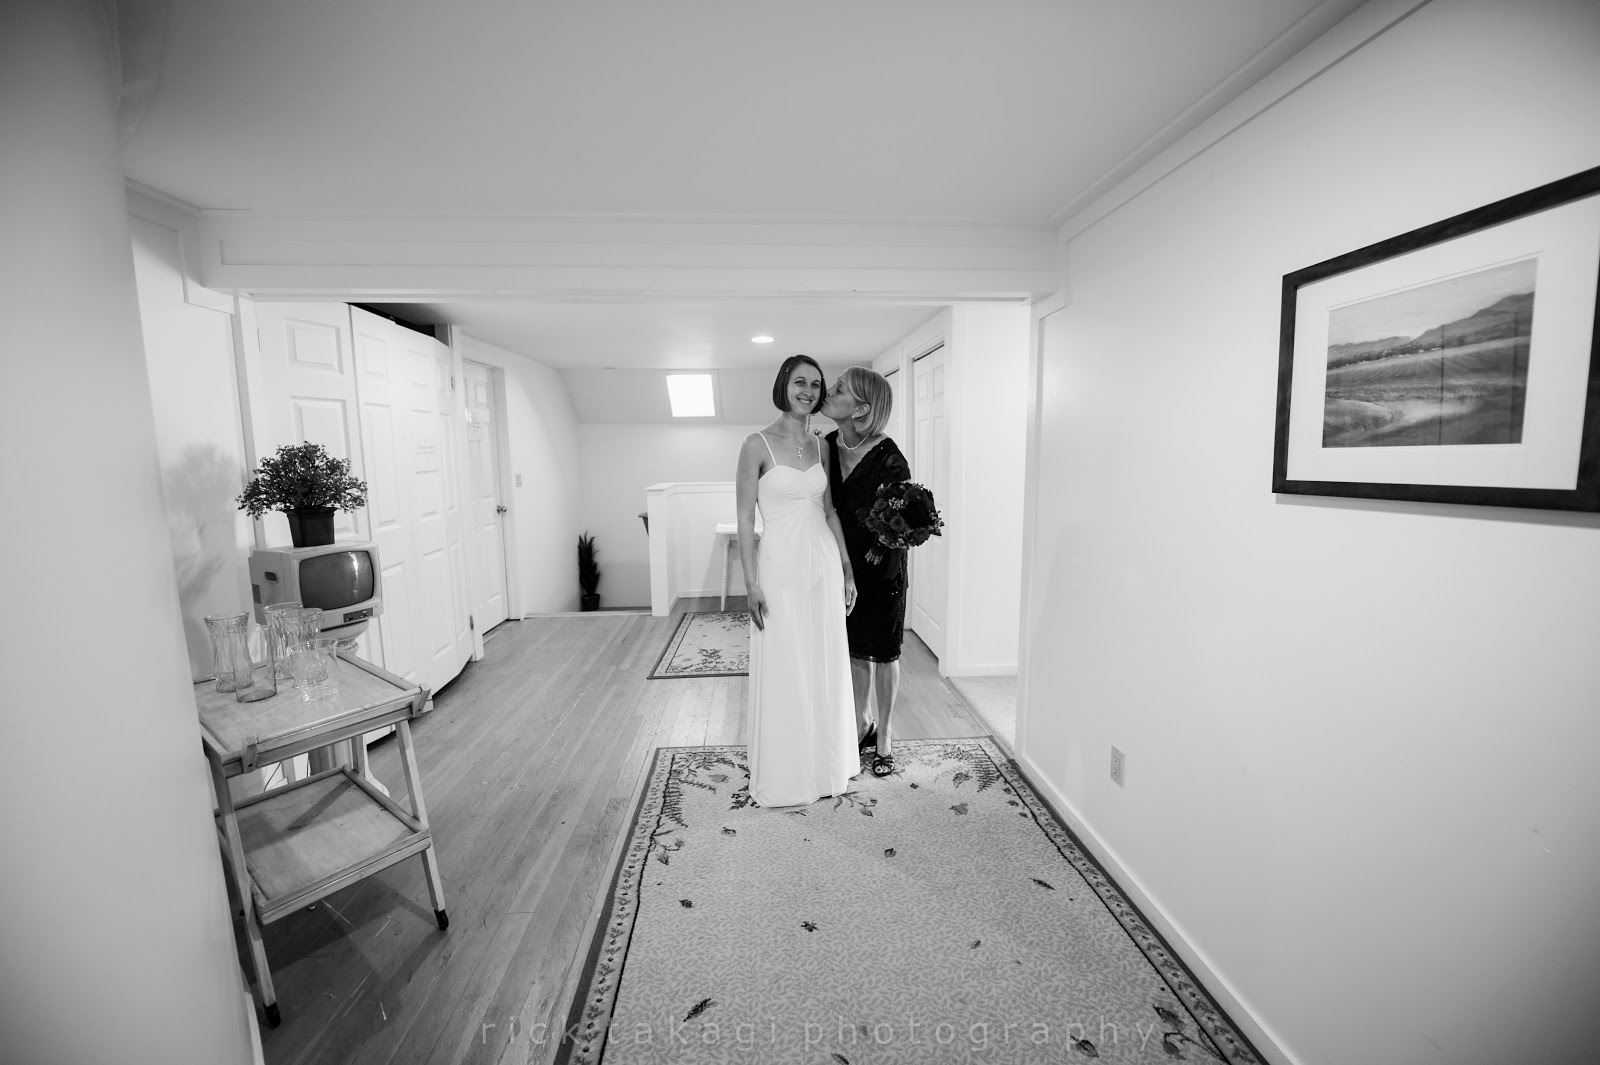 Bridal suite of The Grand Willow Inn - Patricia Stimac, Seattle Wedding Officiant